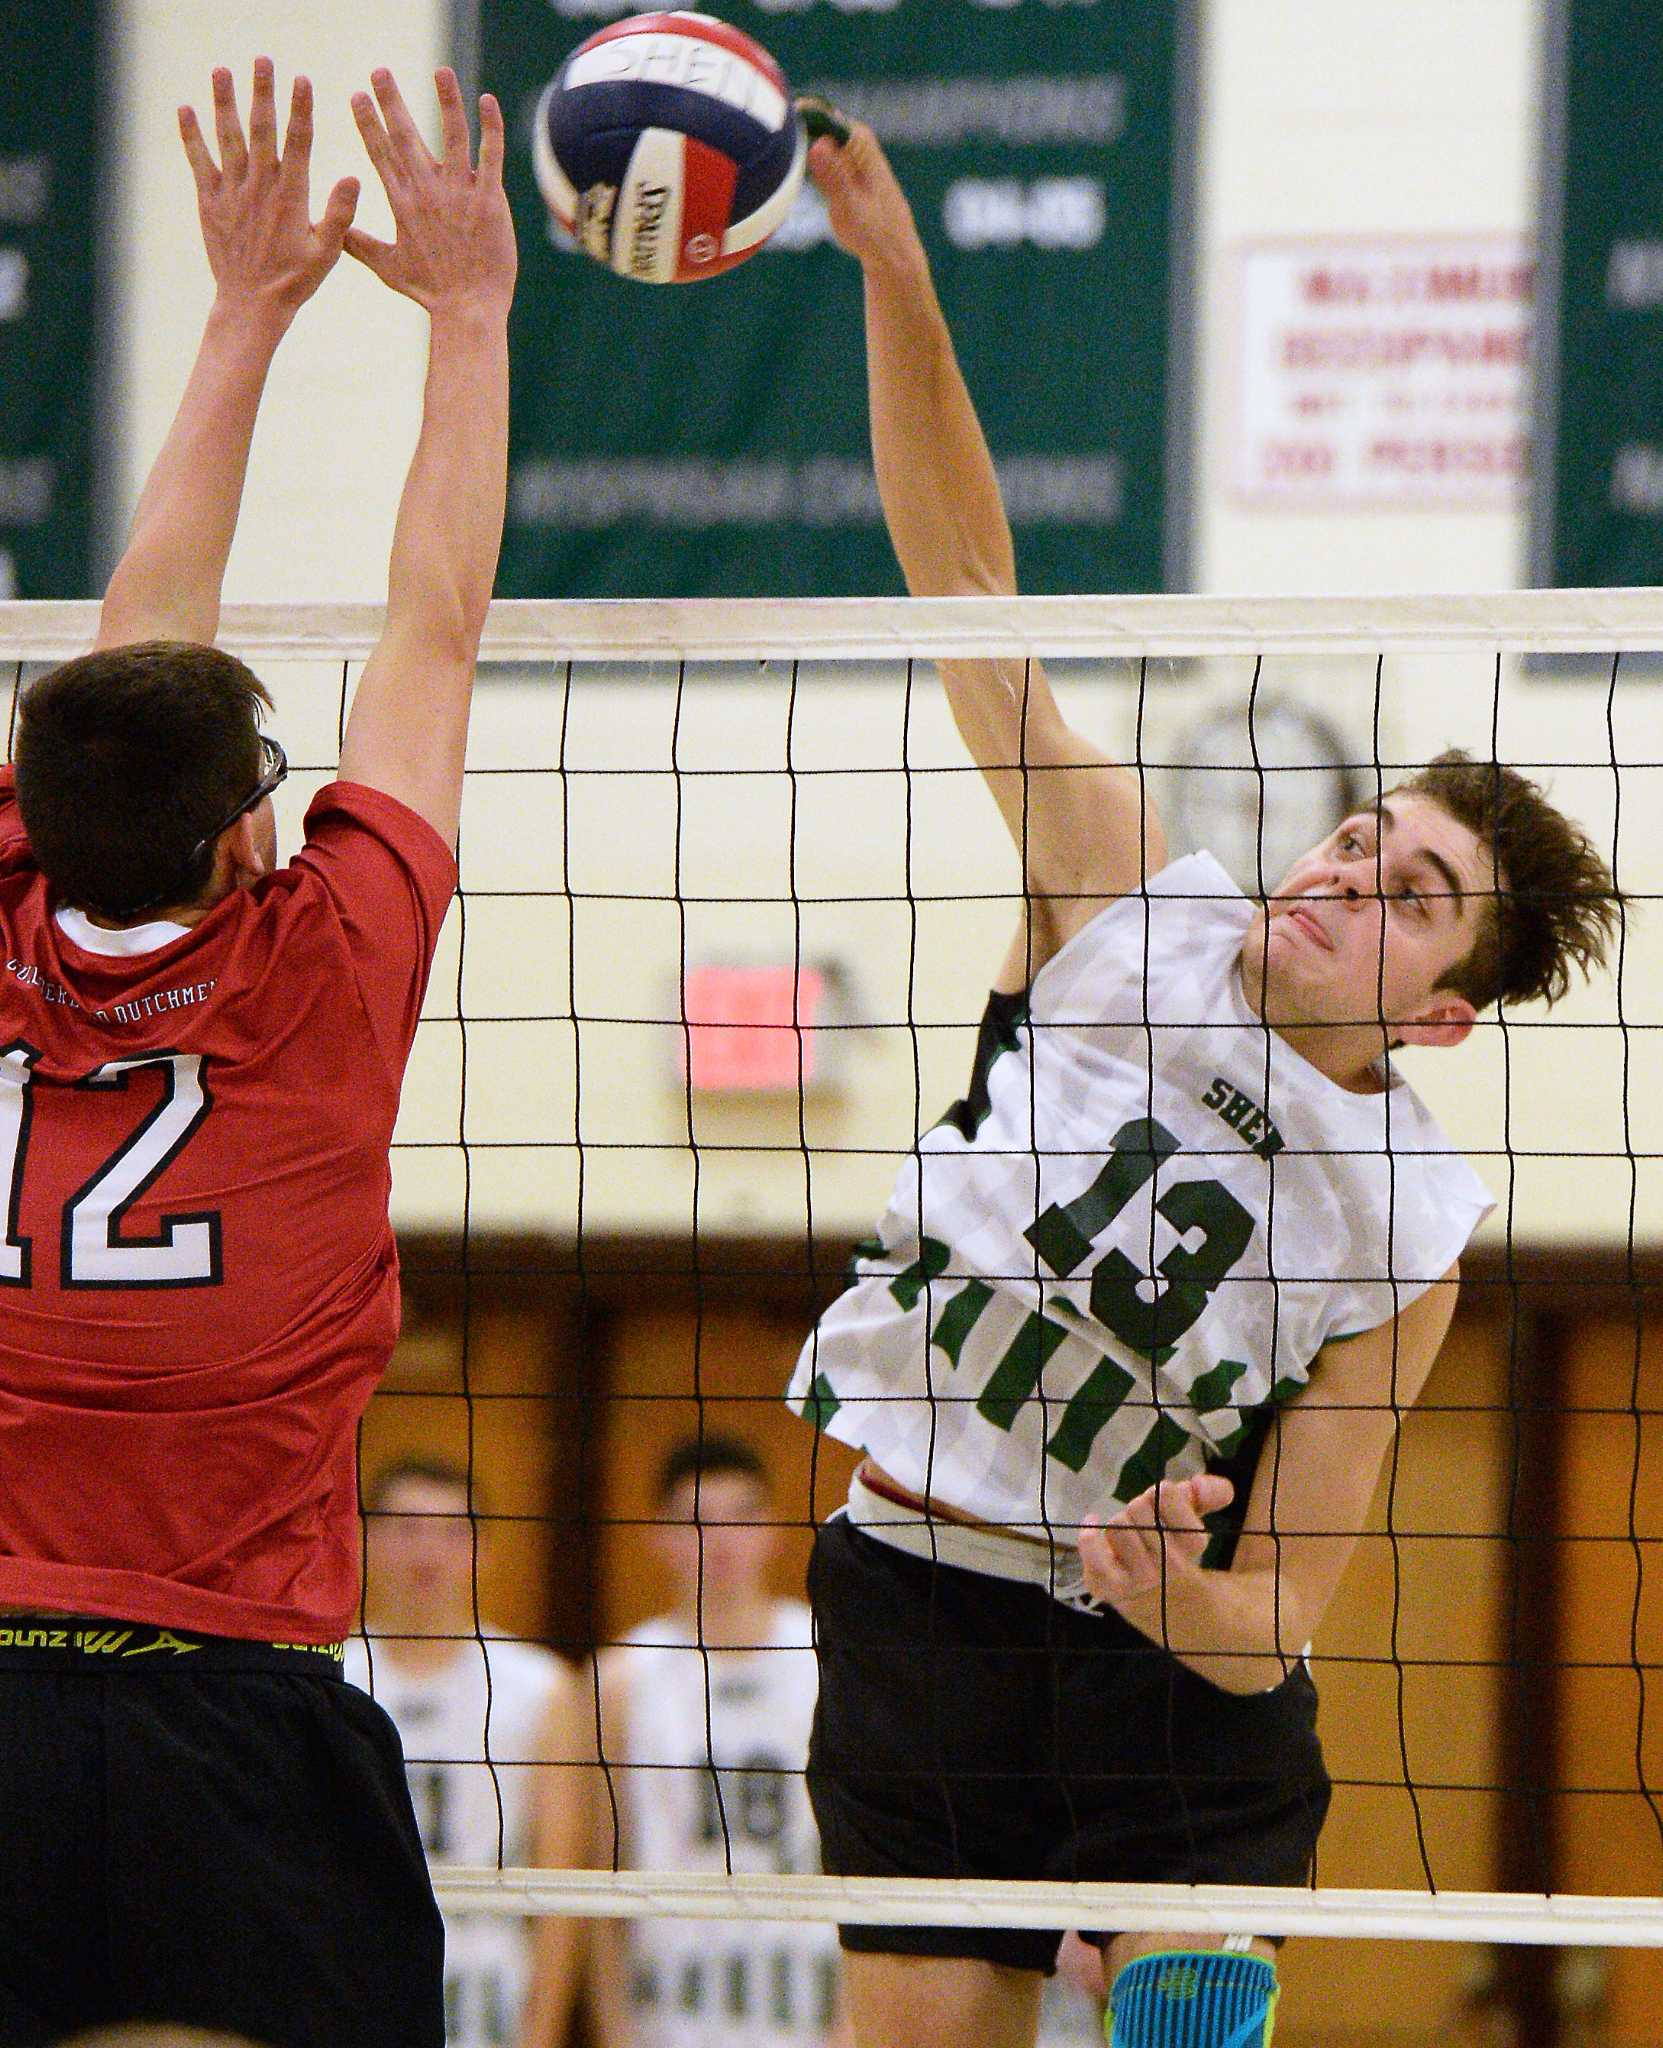 Campus Connect College Sports Entertainment Viral News: Times Union Boys' High School Volleyball All-stars